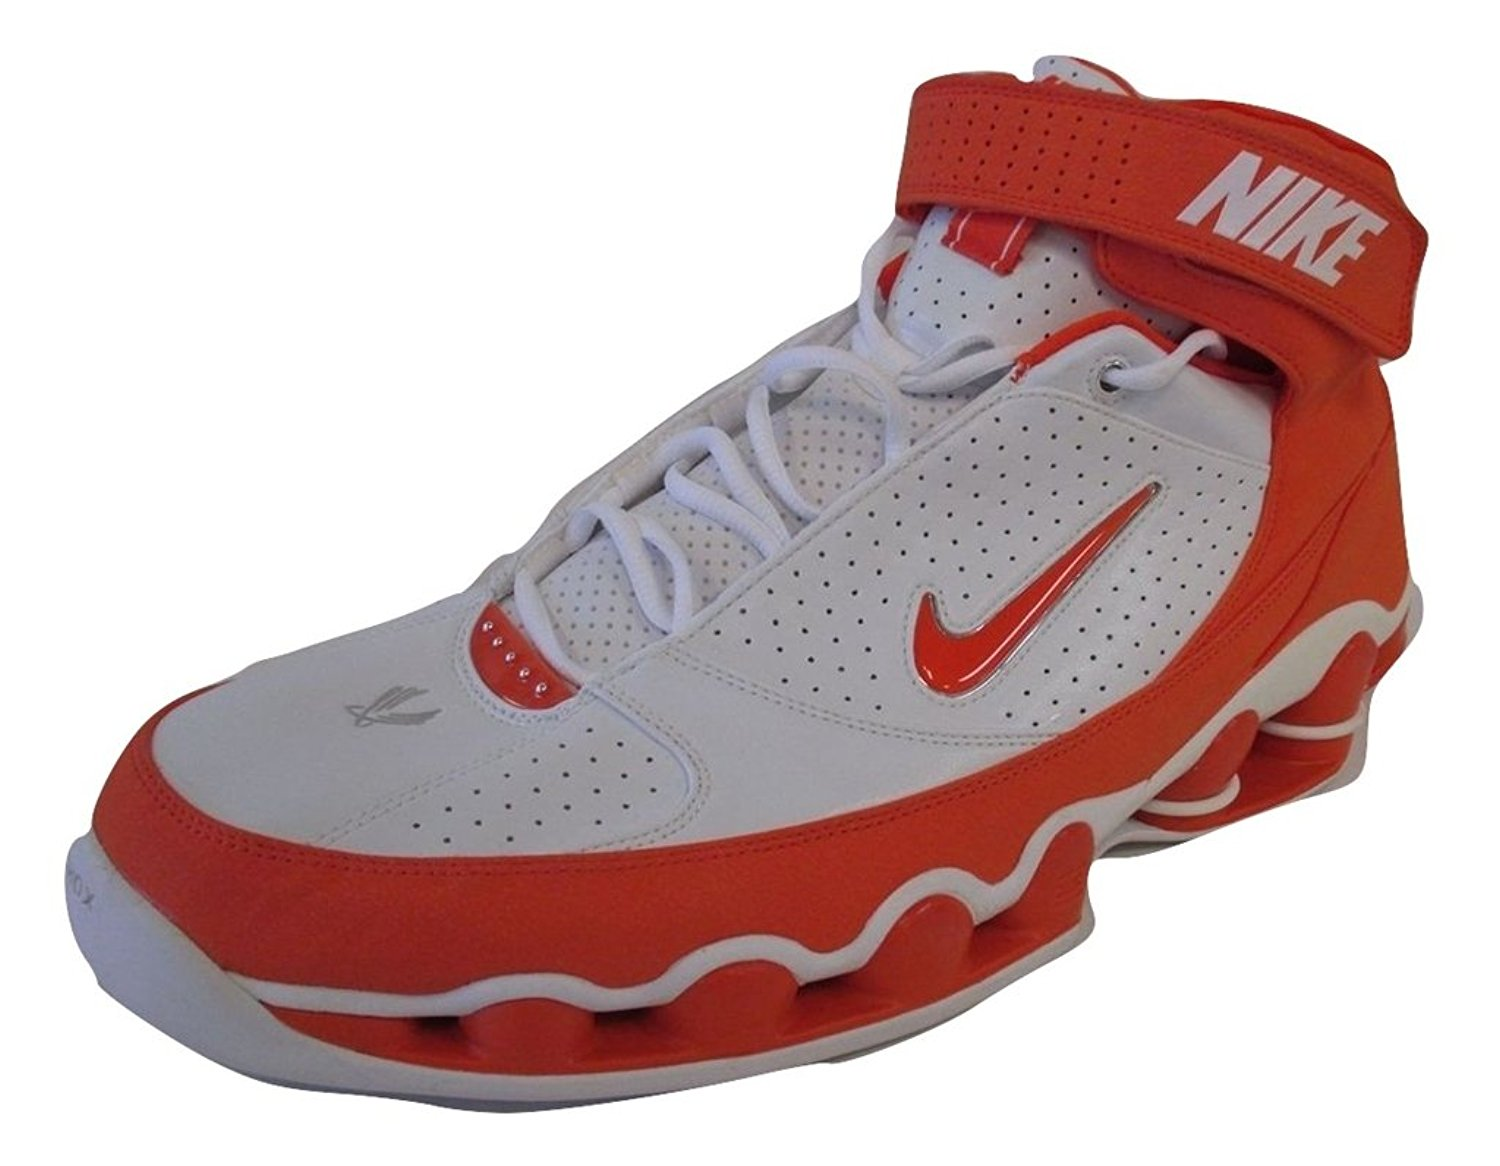 410d9b35354 Nike Men s Shox Ups TB Basketball Shoes White Safety Orange 17 ...